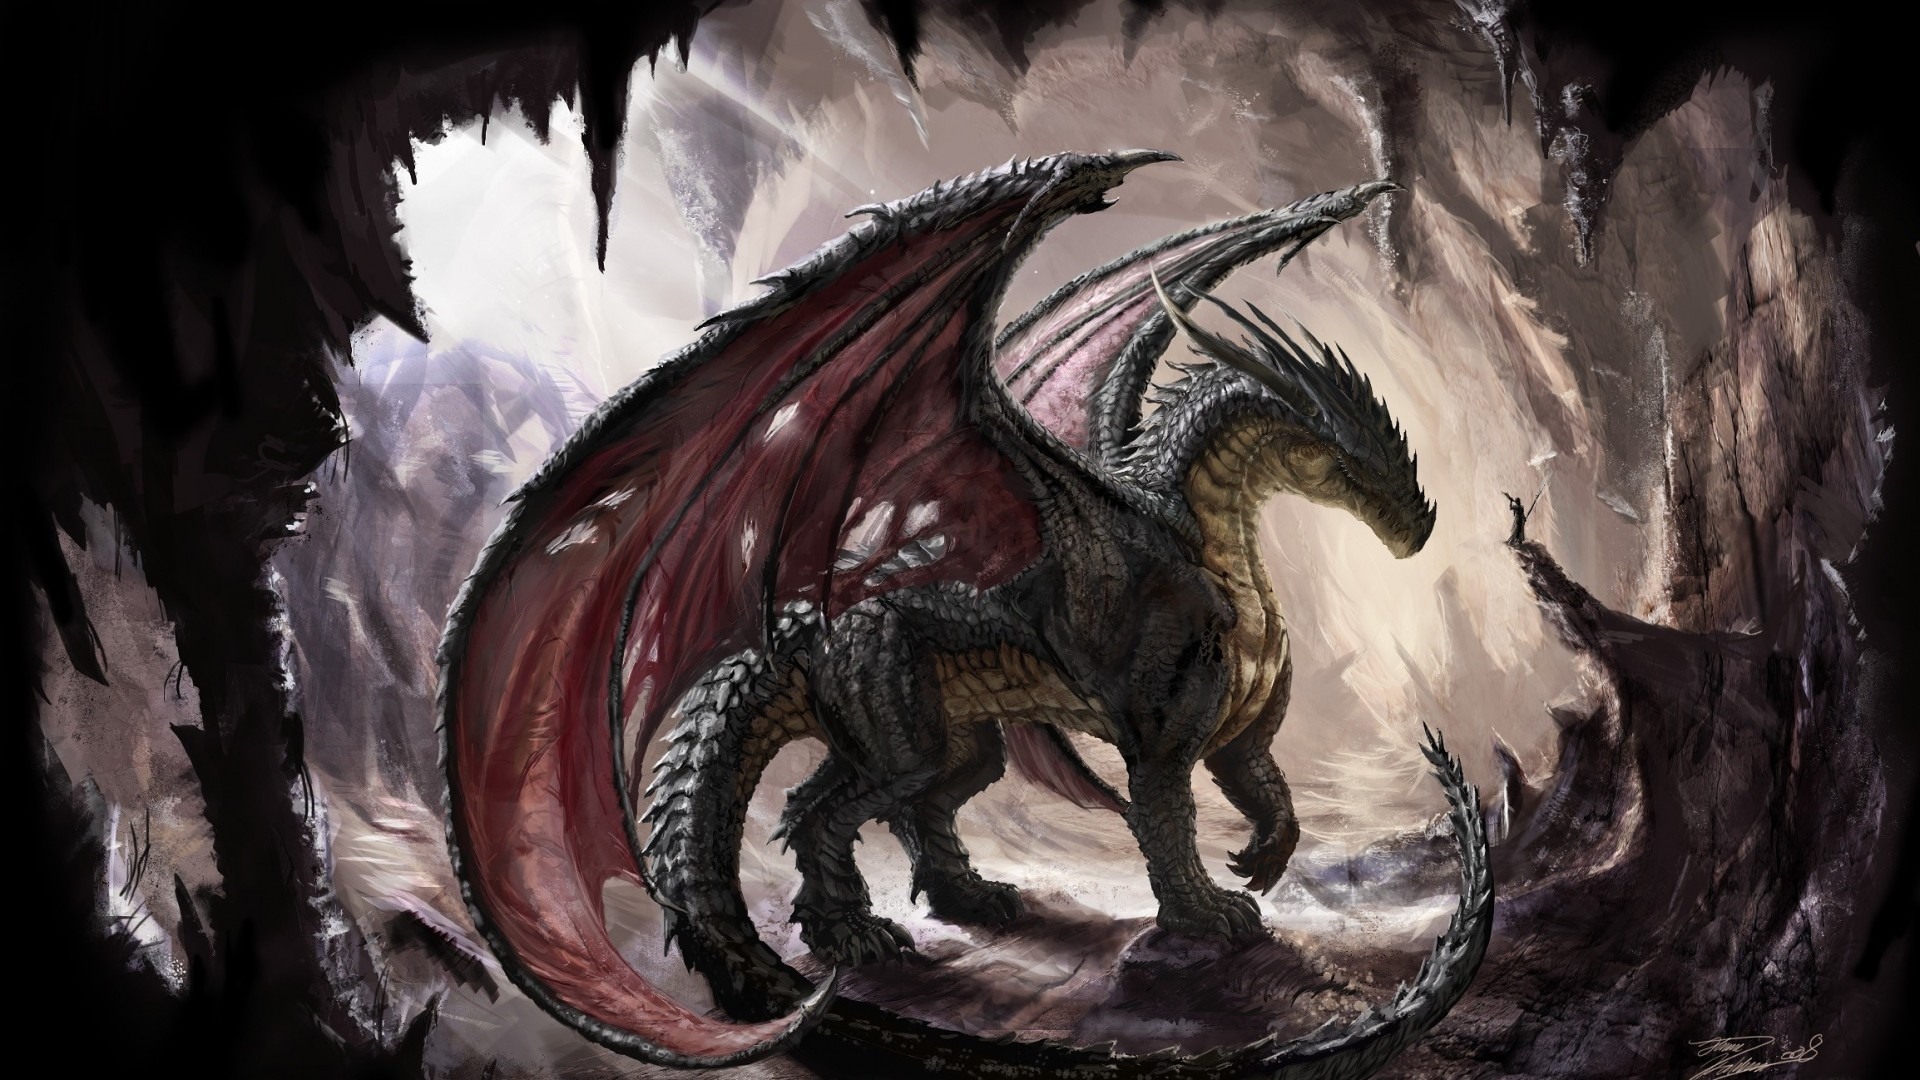 1920x1080 Full HD 1080p Dragon Wallpapers HD, Desktop Backgrounds  ... src